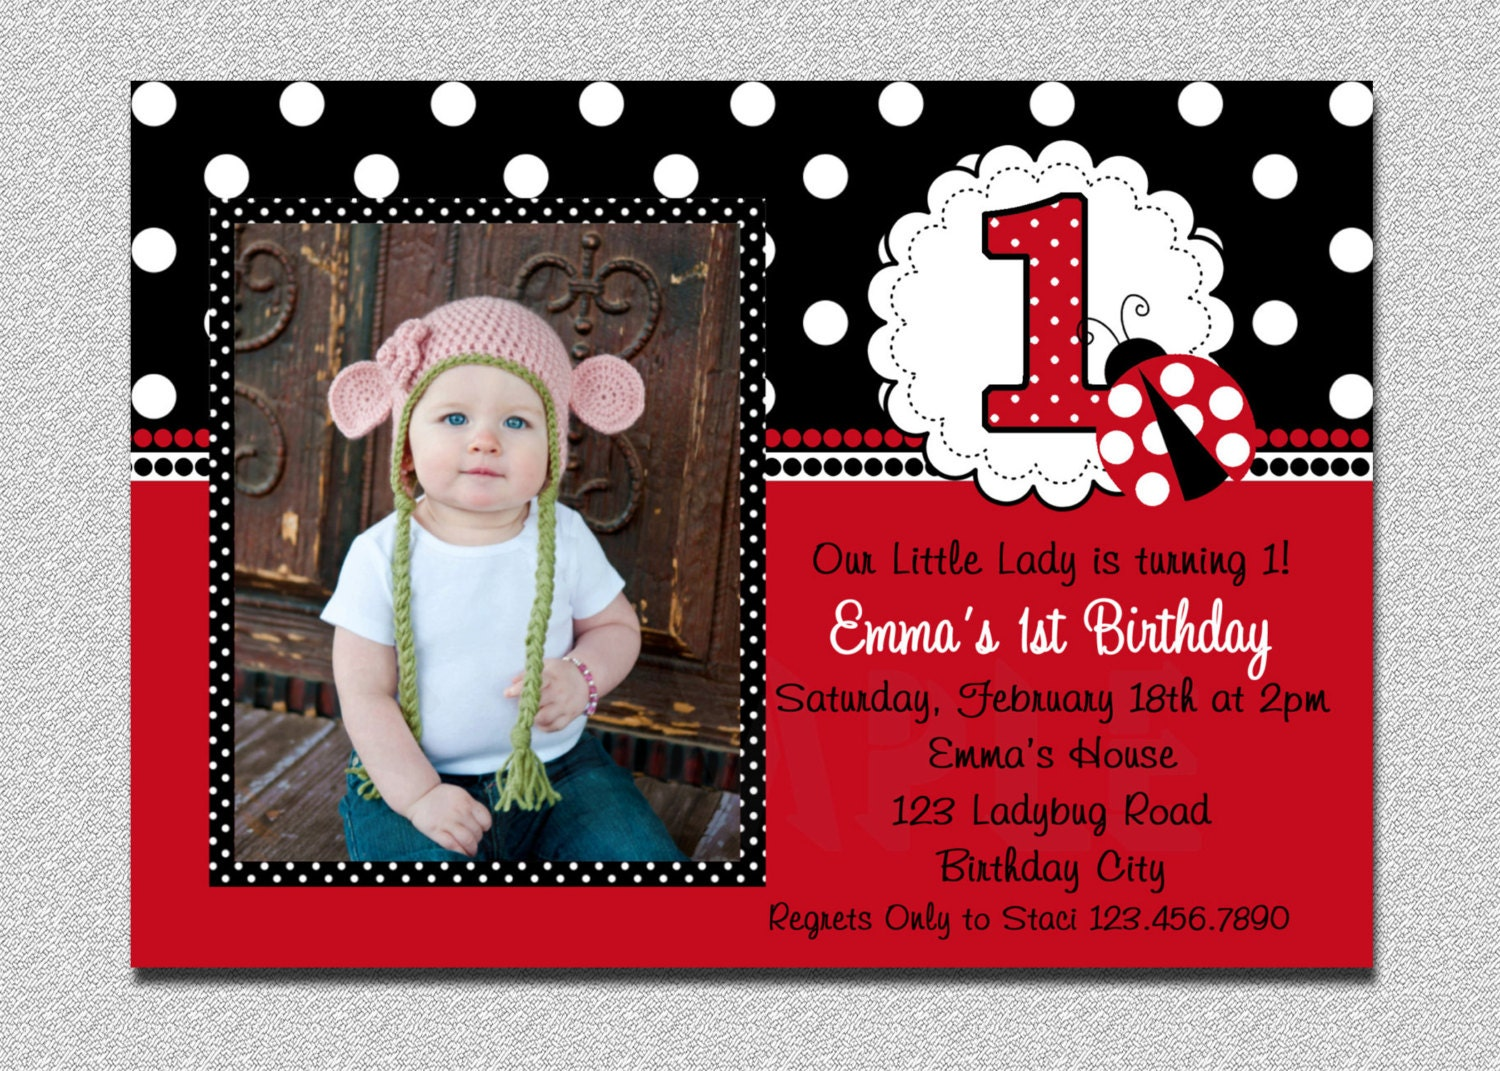 Ladybug Birthday Invitation Ladybug 1st Birthday Party Red